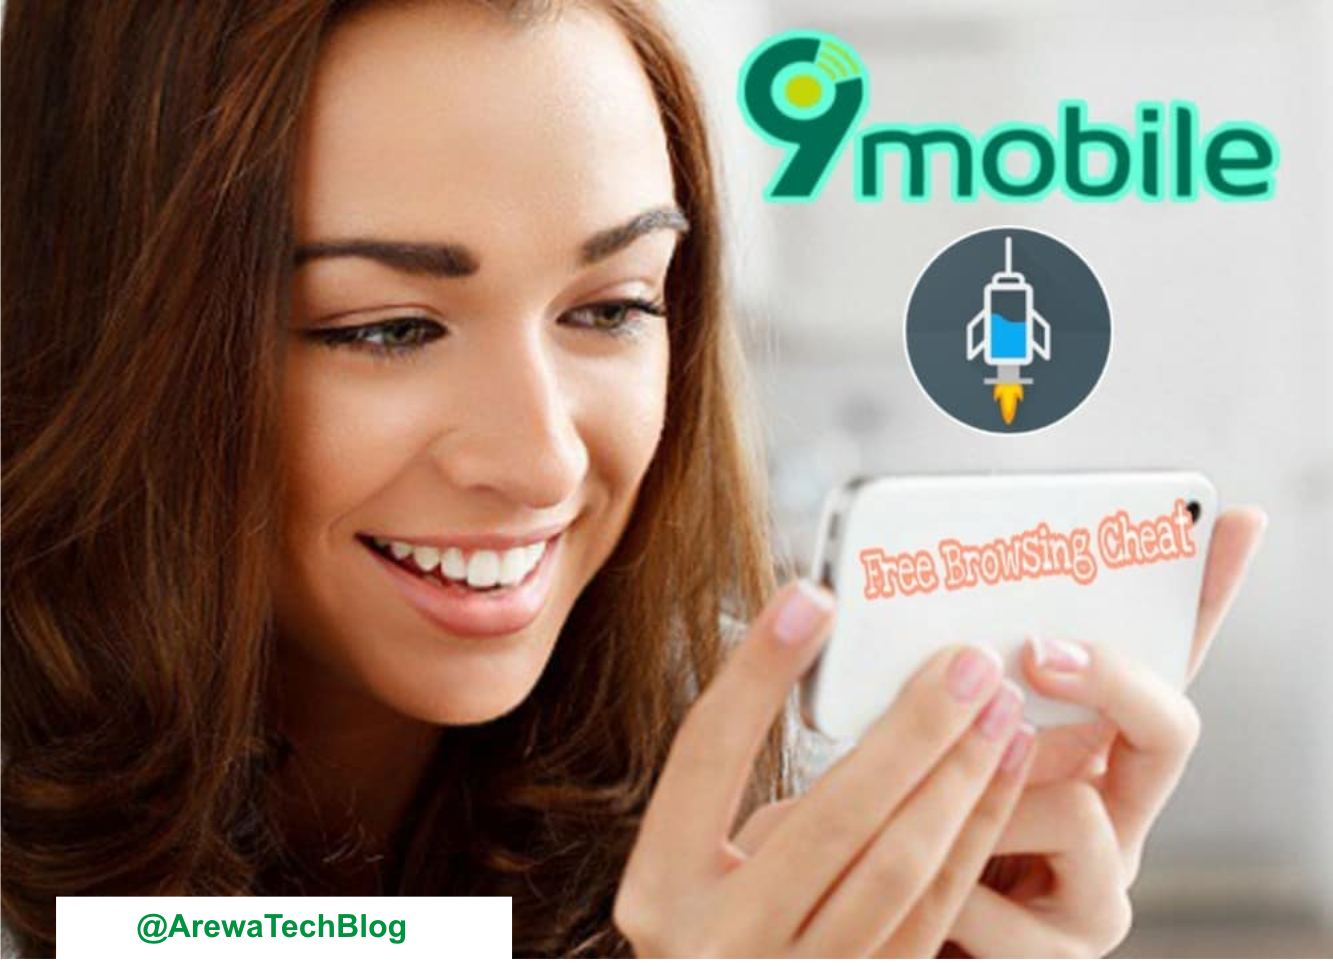 LATEST 9MOBILE FREE BROWSING CHEAT VIA HTTP INJECTOR 2019